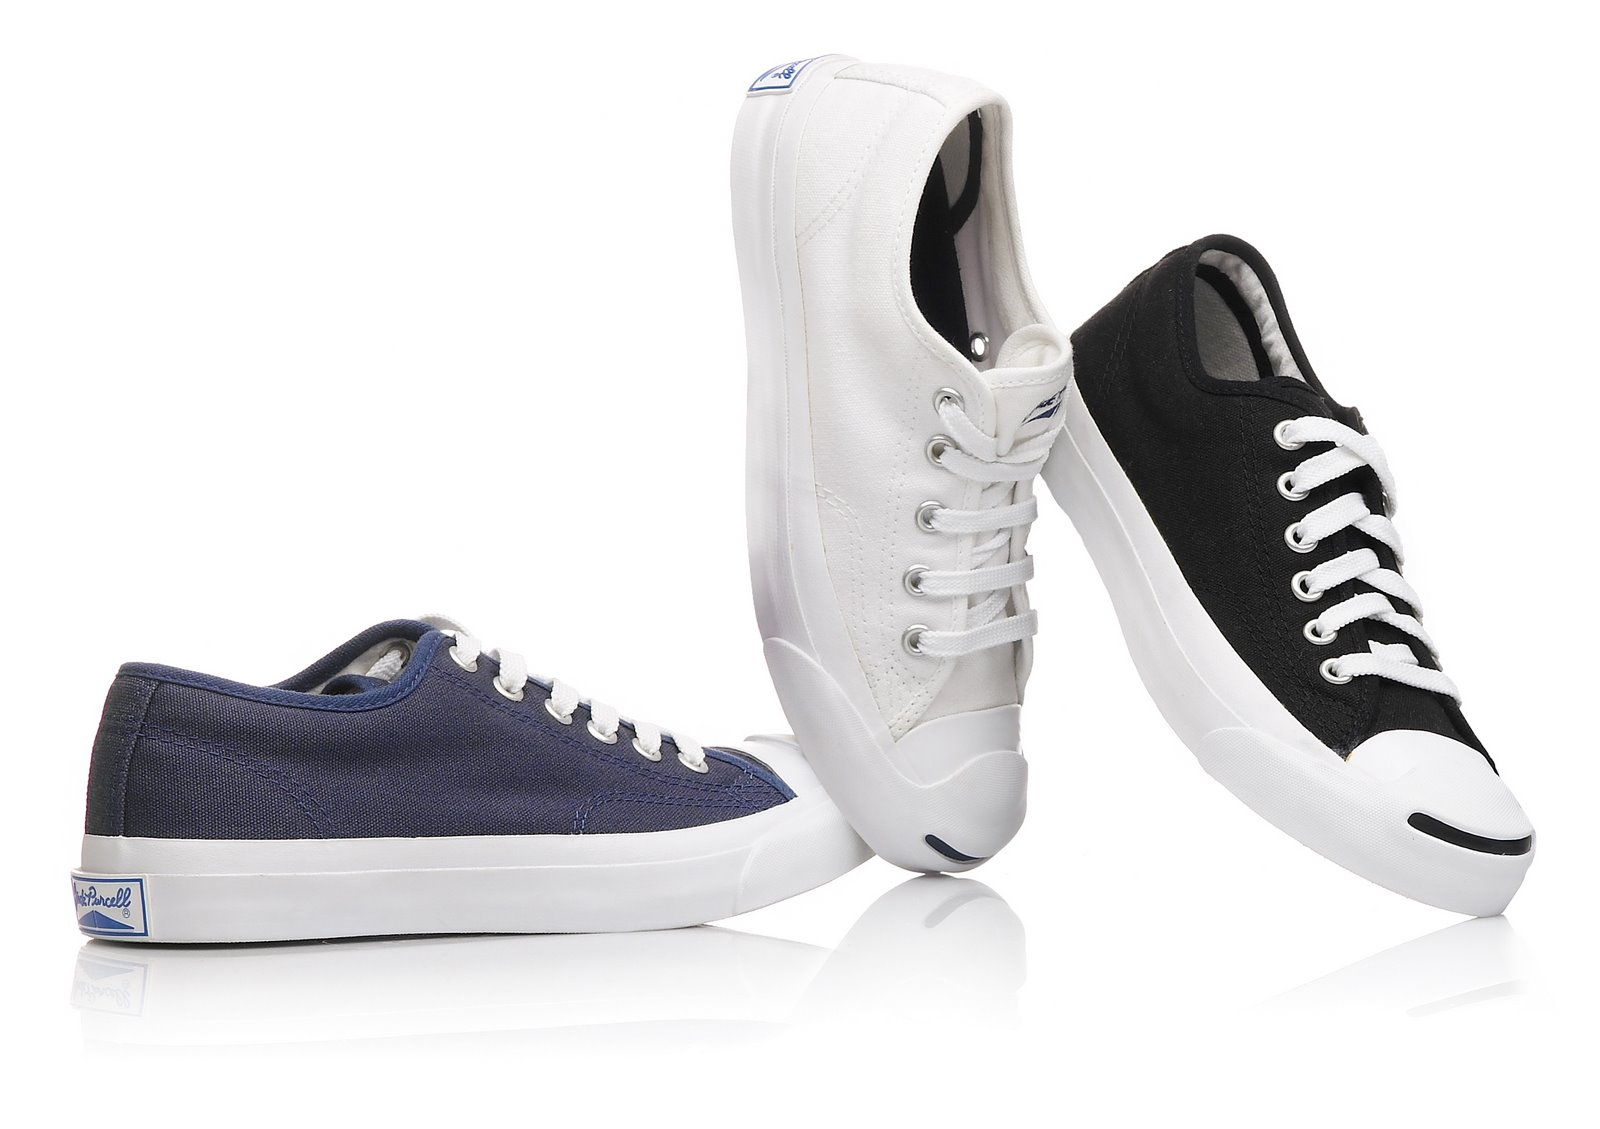 [Jack+Purcell+Shoes.jpg]